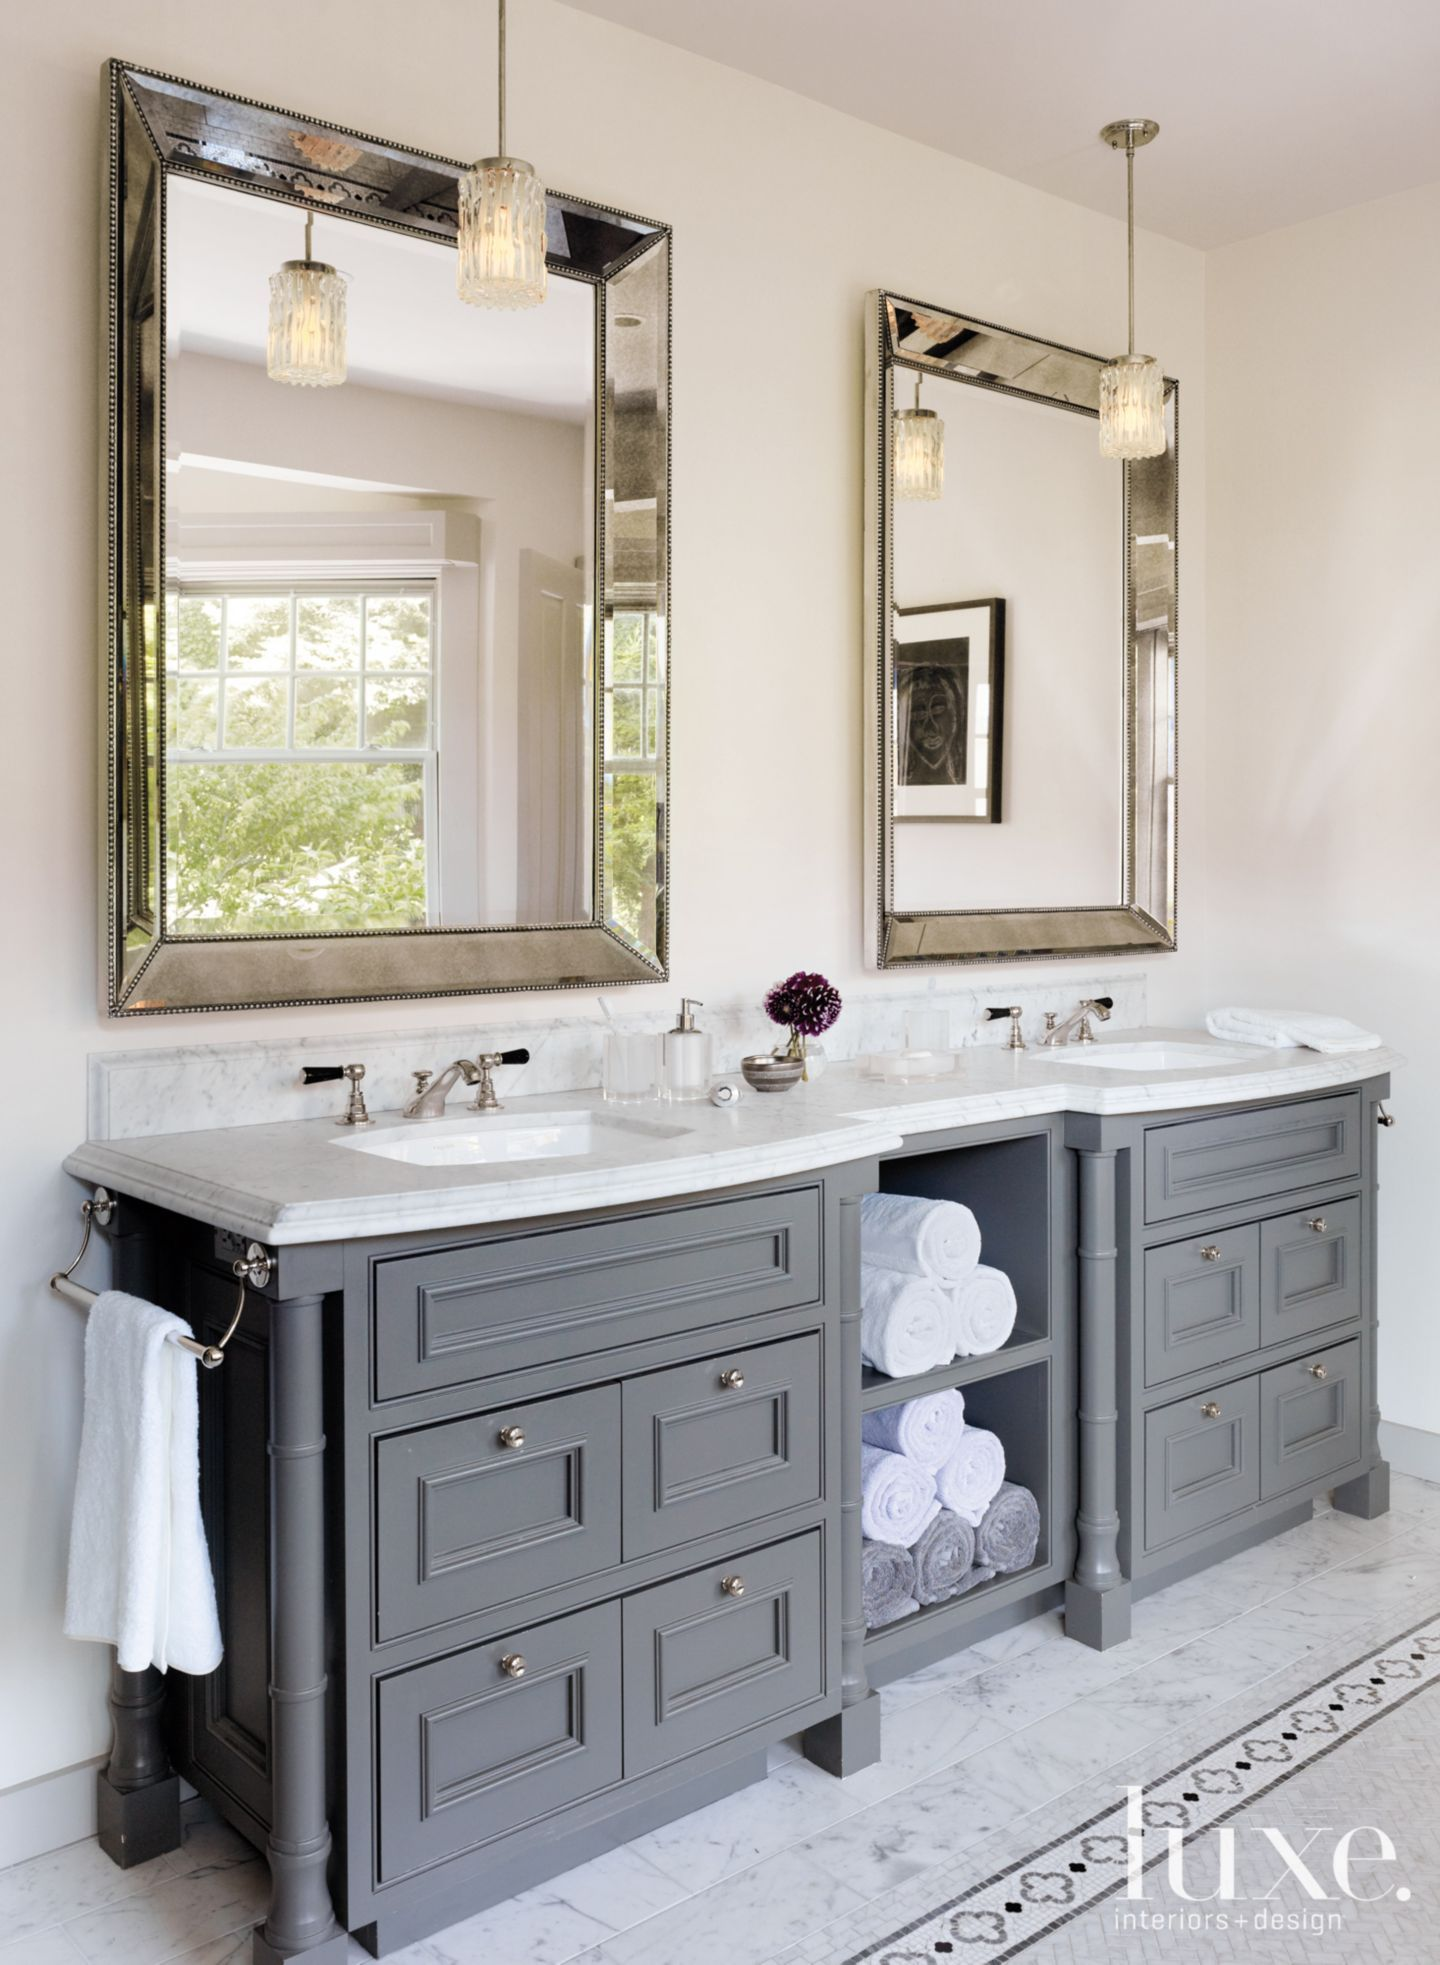 Custom Bathroom Vanities Hamilton in the master bathroom, rosenfeld hung a pair of midcentury nickel